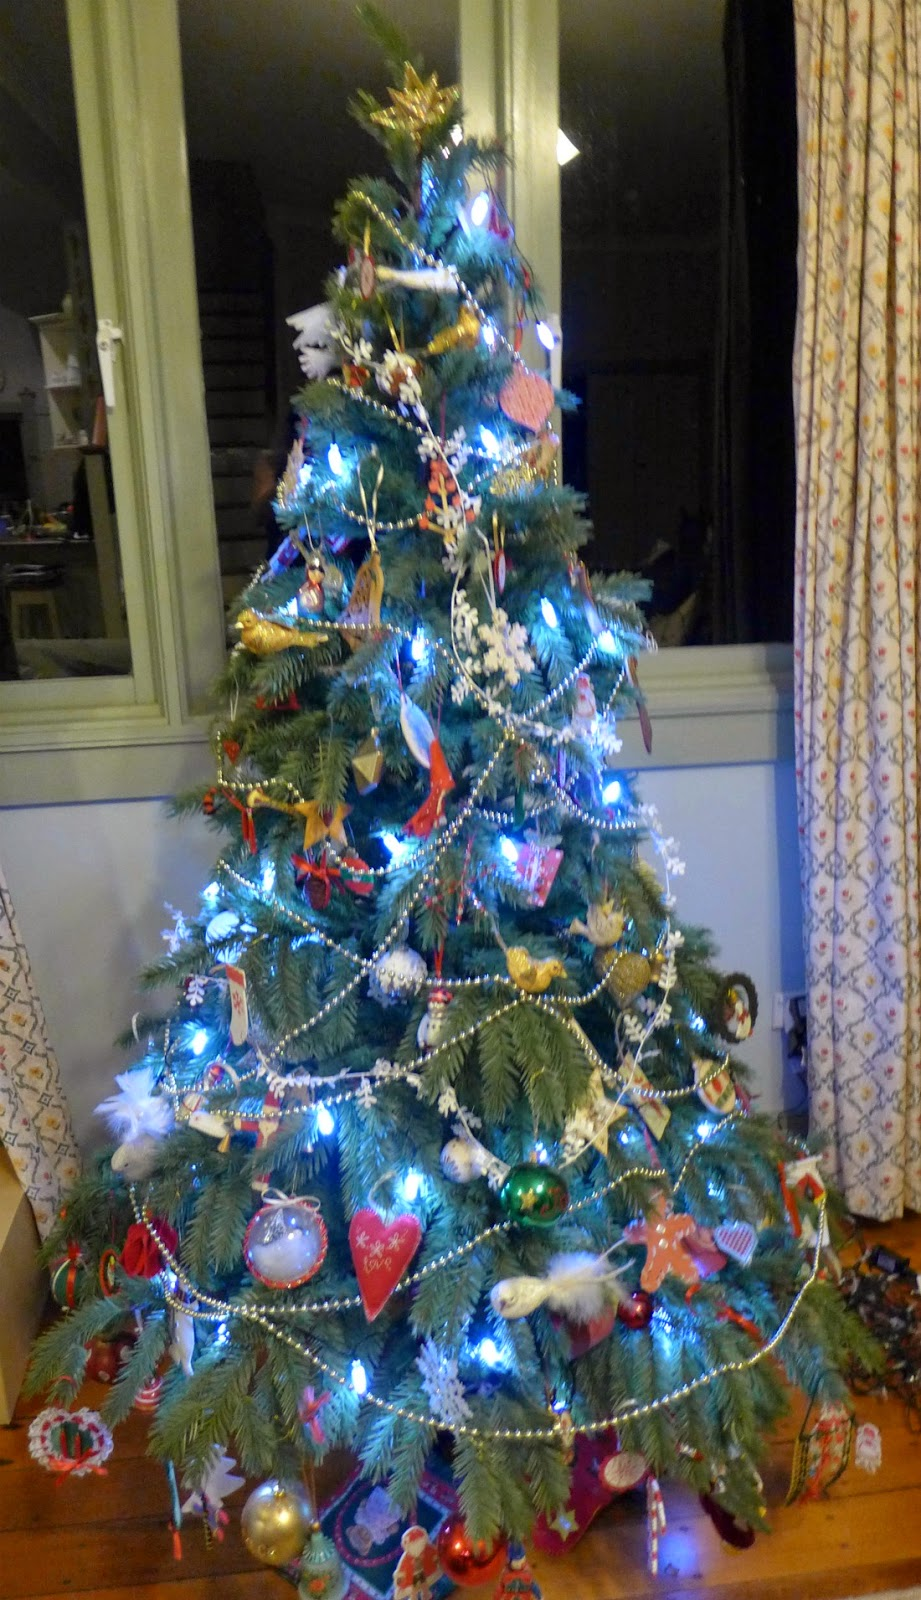 A Woman of Notes: Christmas Tree Lights - warm or cool white?